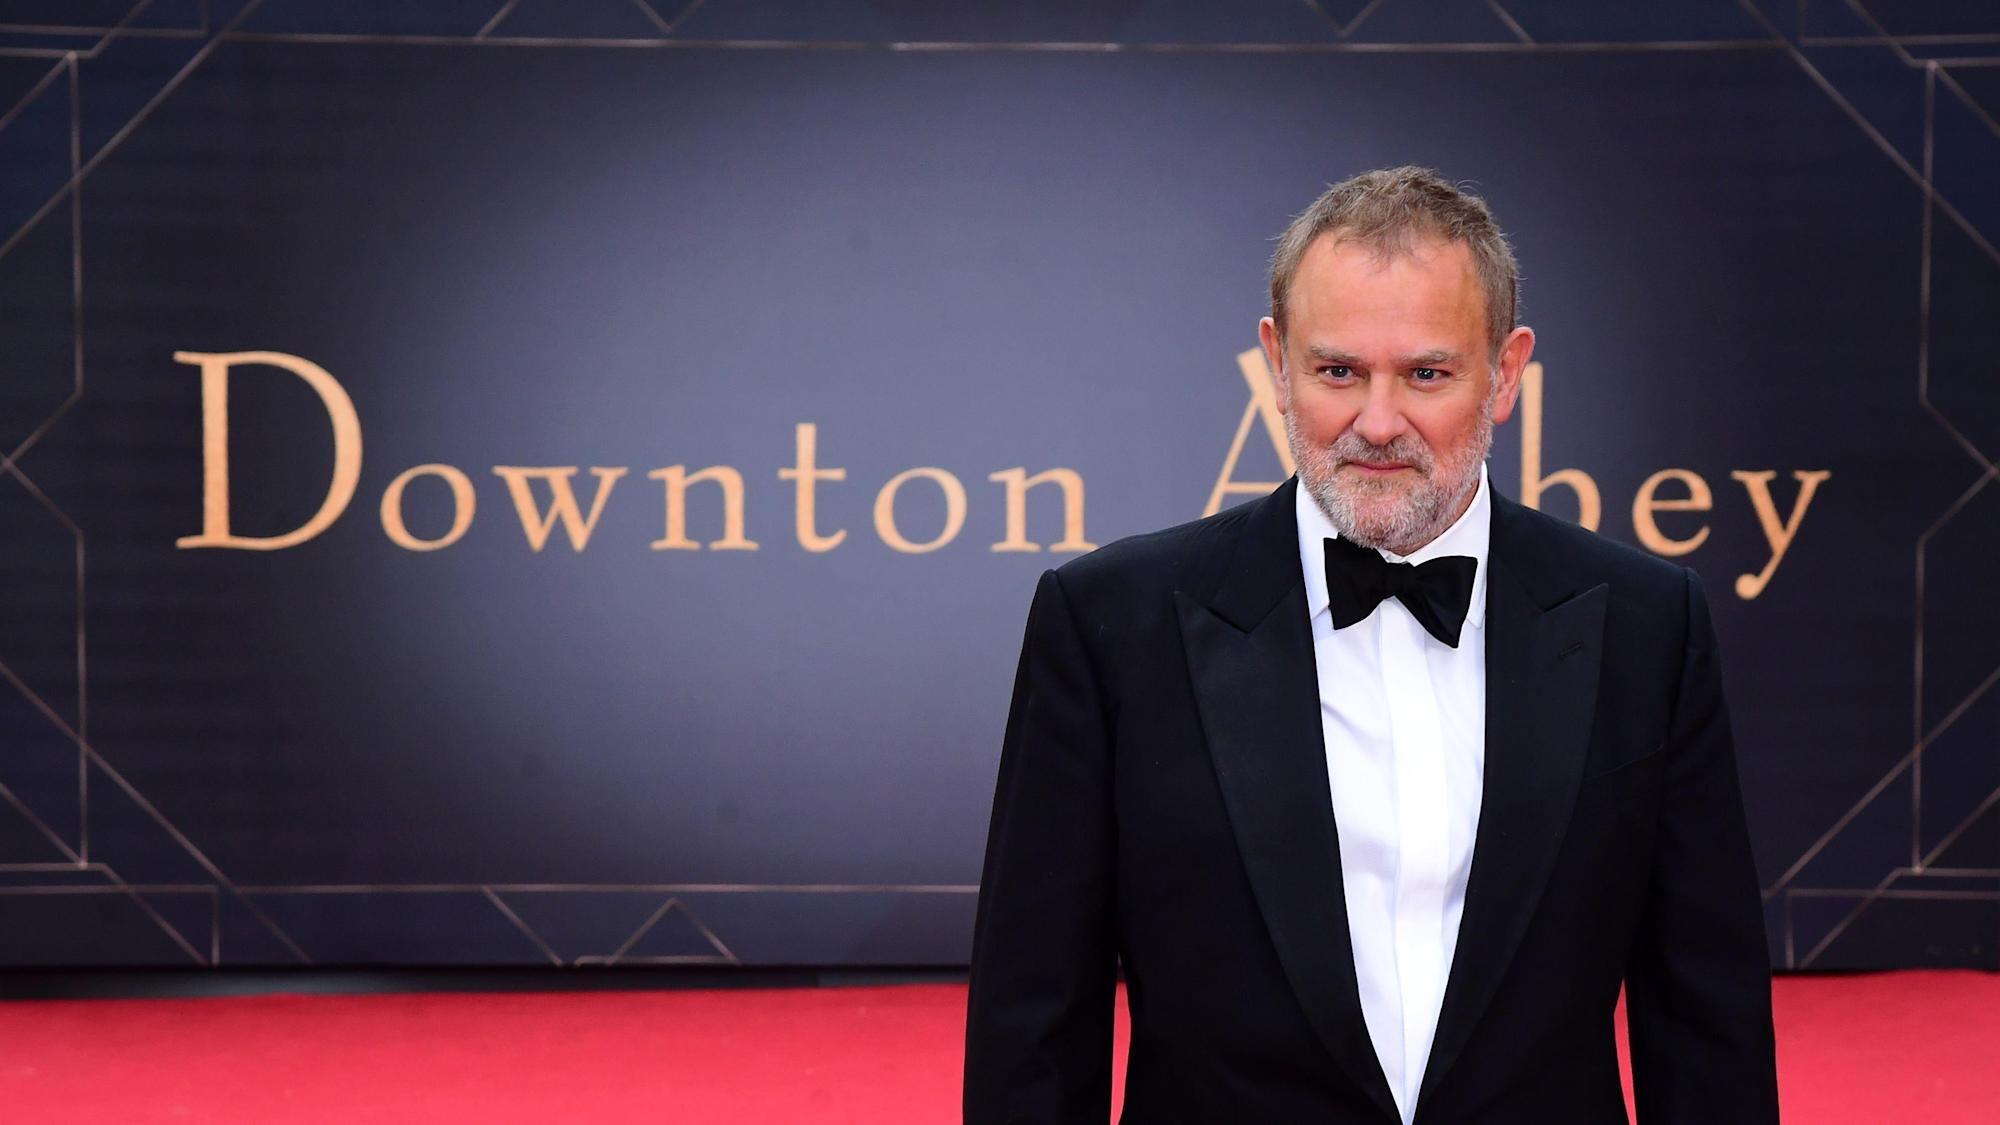 What have the Downton Abbey cast been doing since the release of the first film?